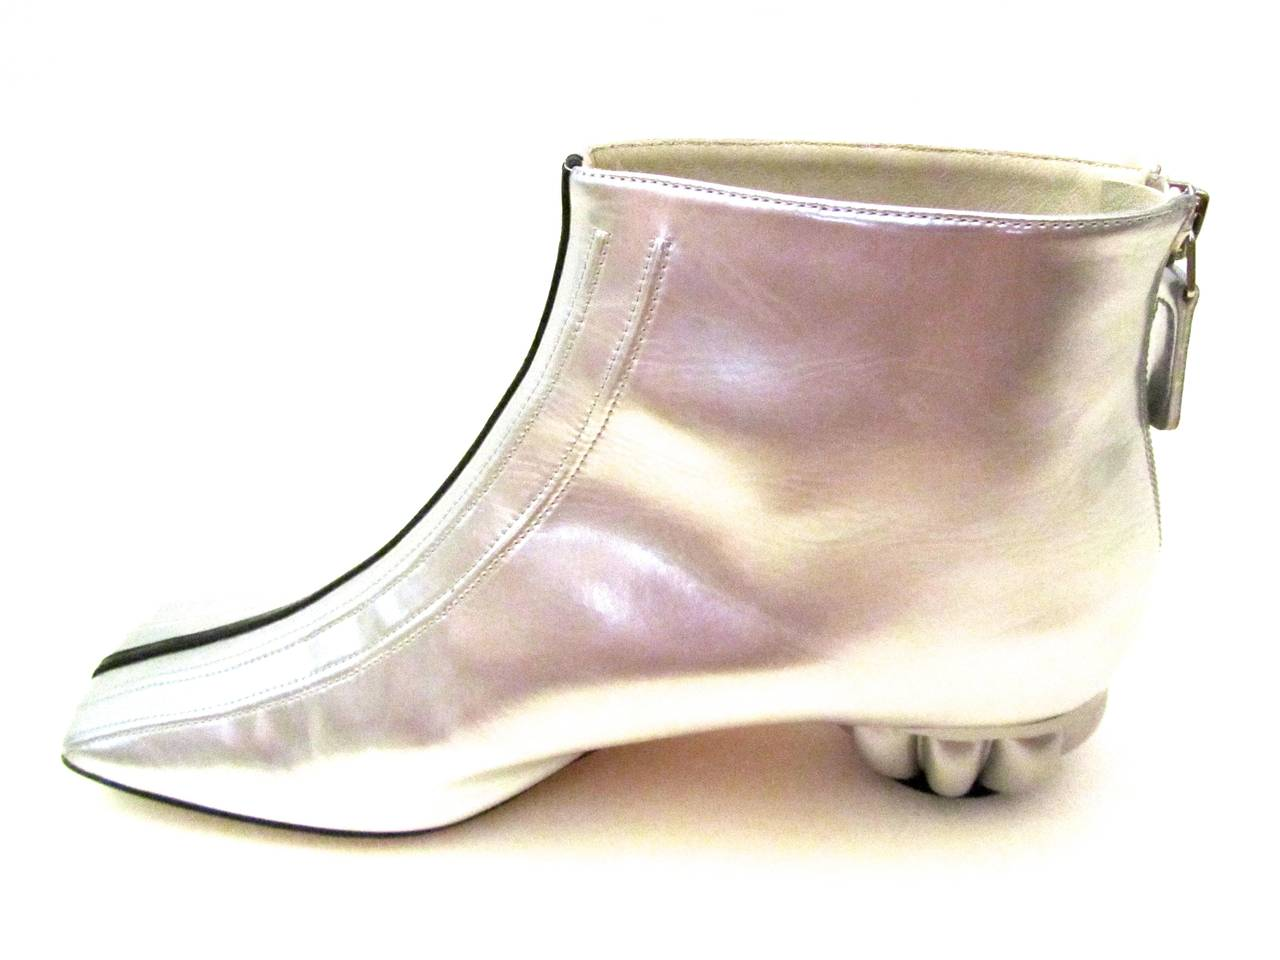 Chanel Boots - Patent Leather - Silver with Black Stripe - Size 37.5 2